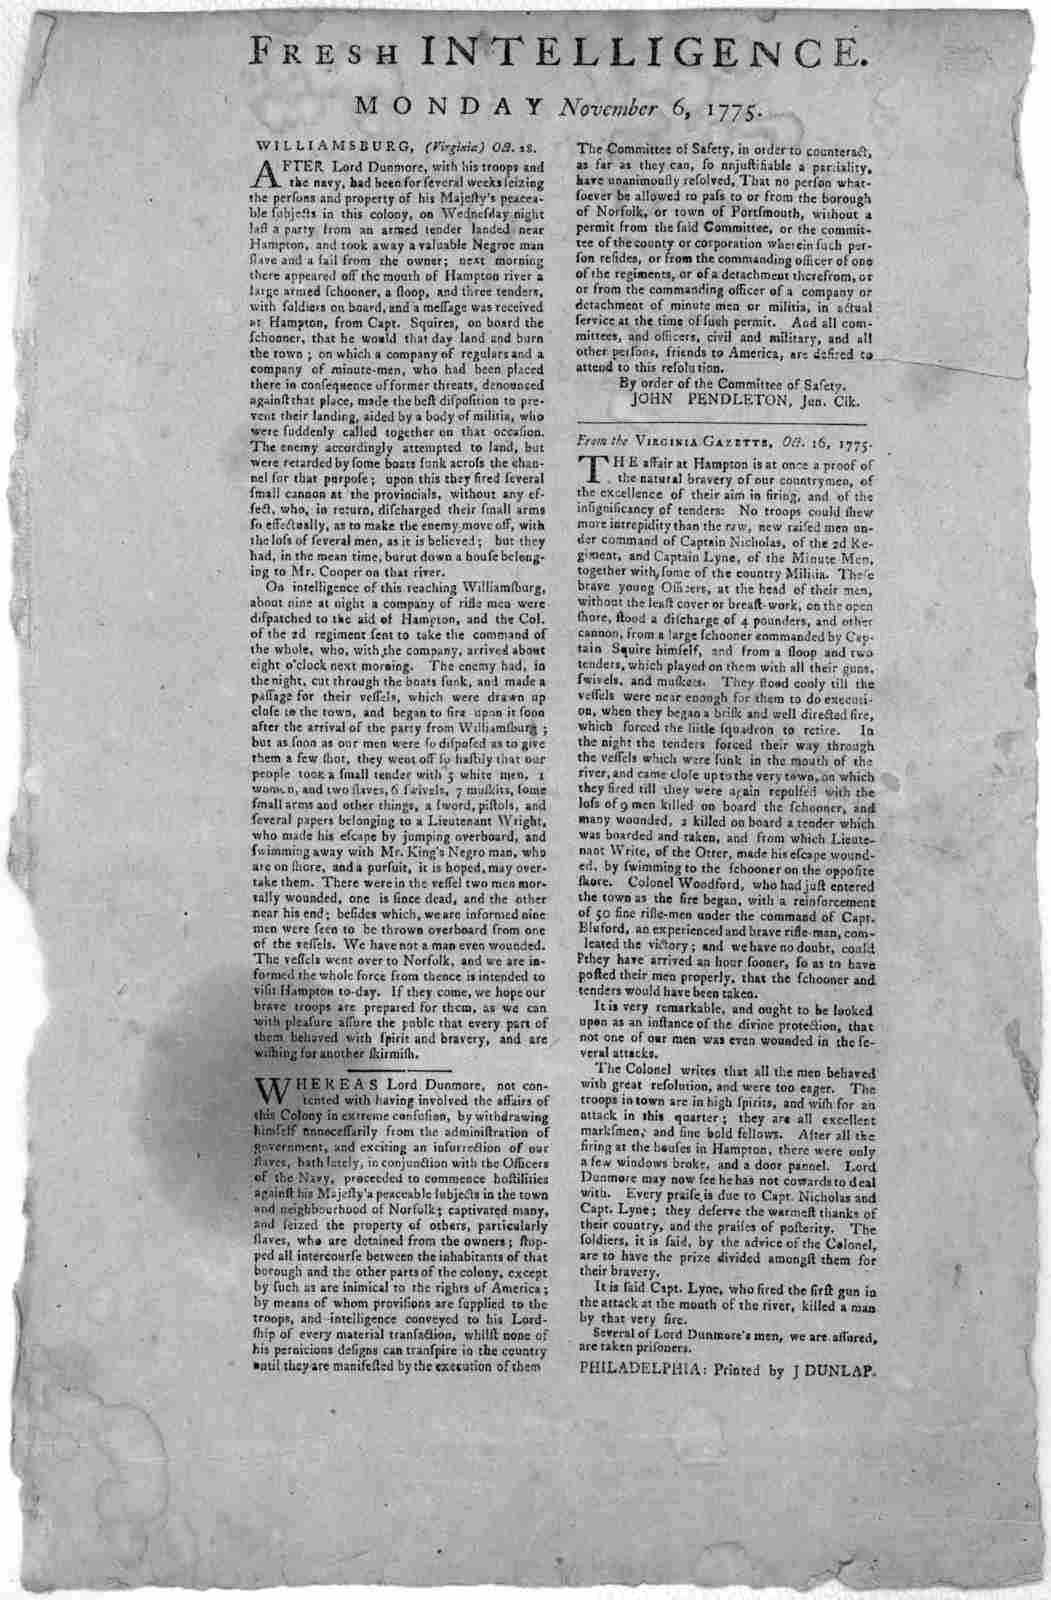 Fresh intelligence. Monday. November 6, 1775. Williamsburg, (Virginia) Oct. 28. After Lord Dunmore, with his troops and the navy, had been for several weeks seizing the persons and property of his Majesty's peaceable subjects in this colony, on